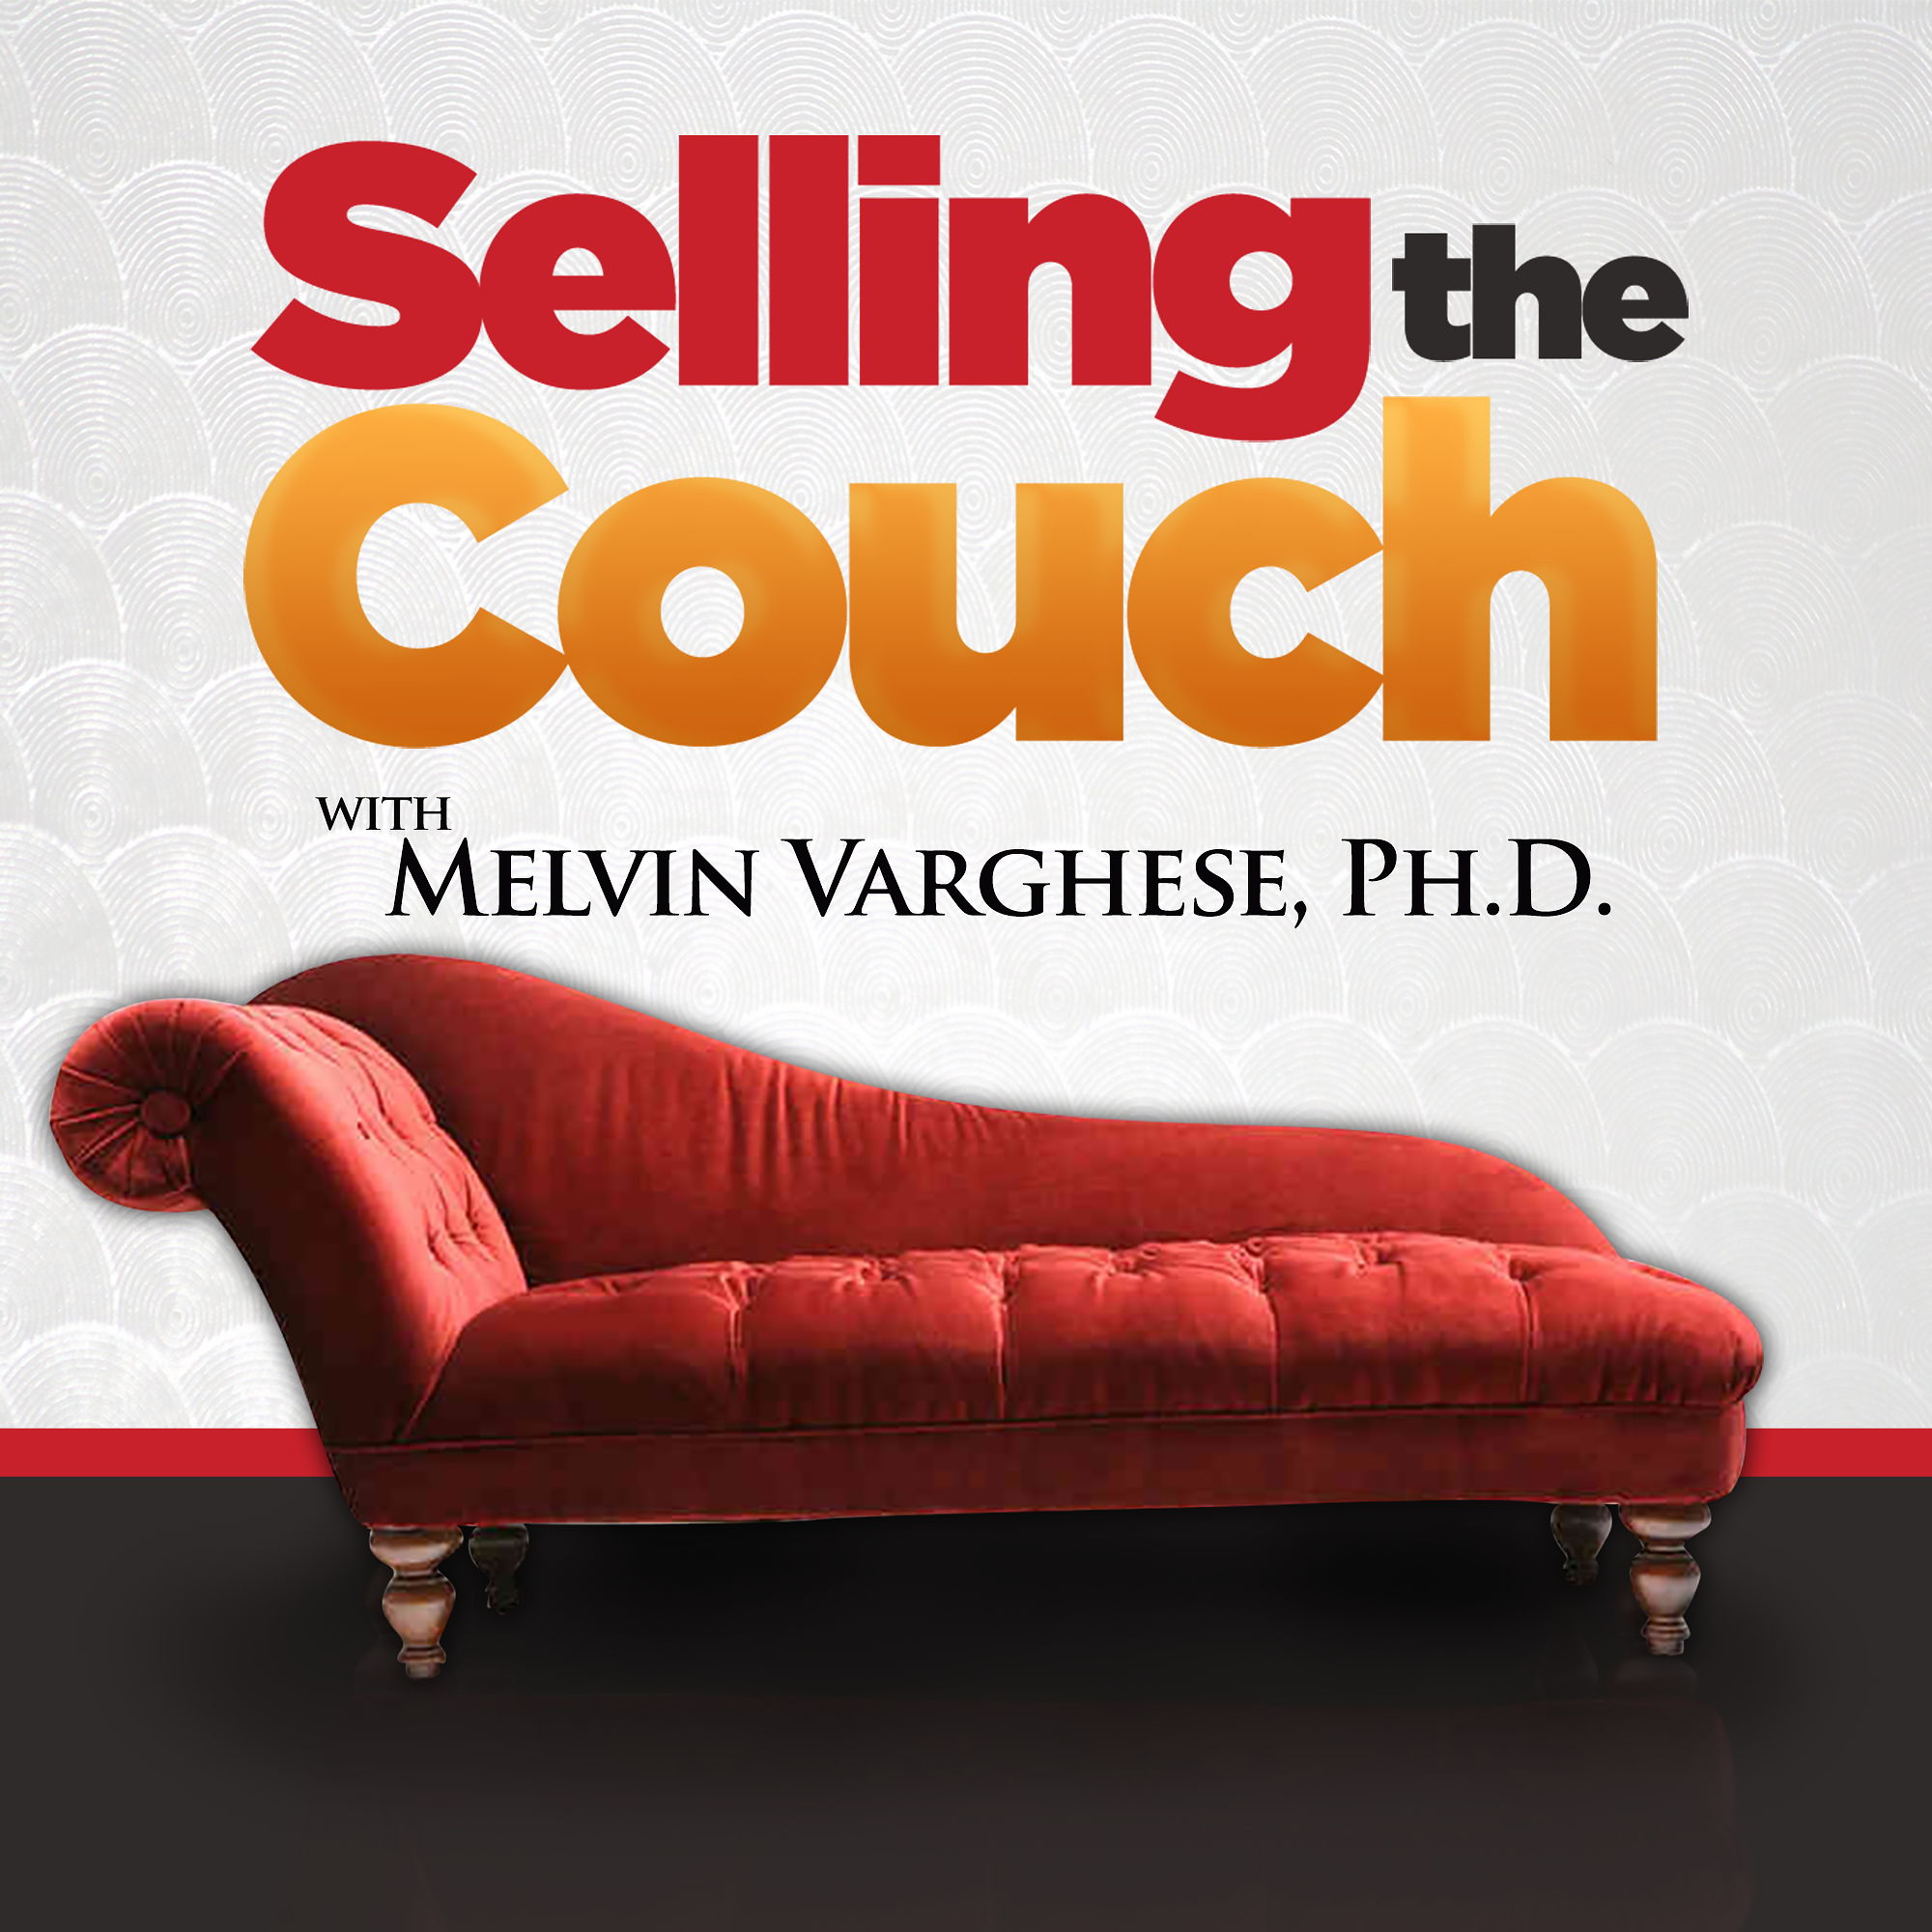 Artwork for podcast Selling the Couch